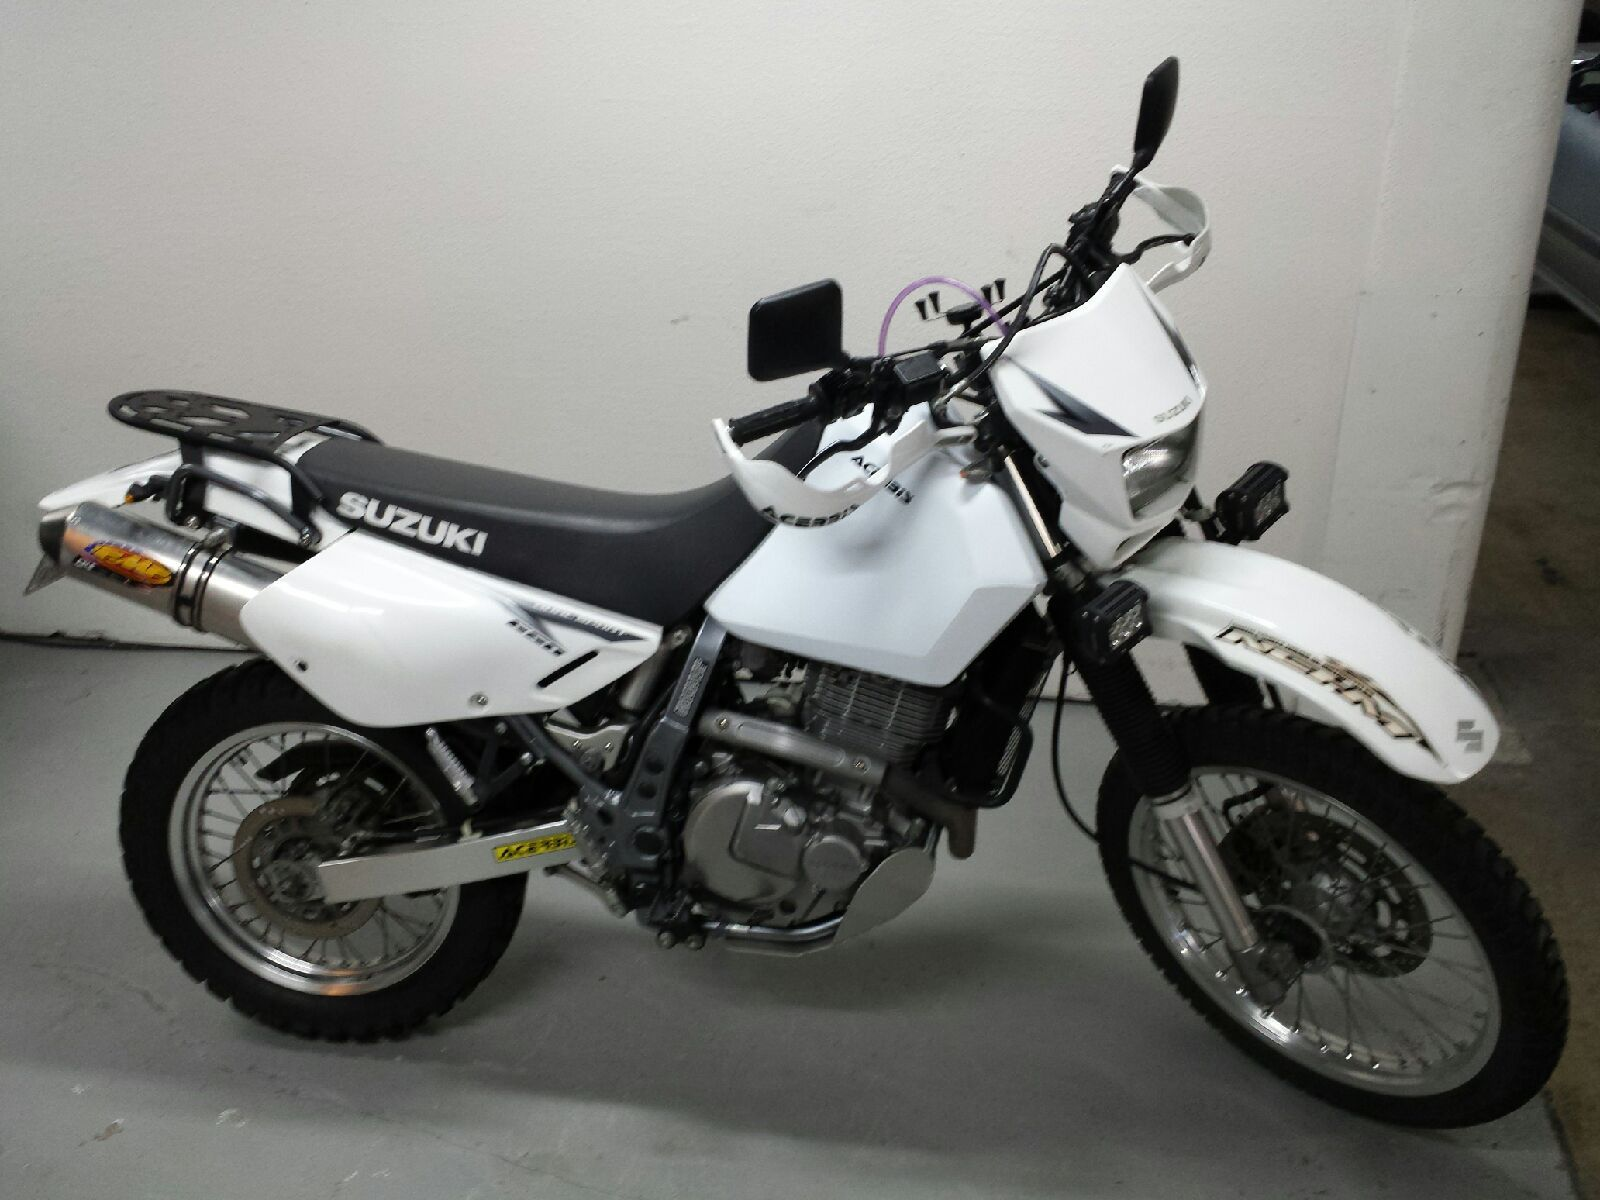 Dr650 With The New Enduro Series Rear Rack Rotopax Ready And Wolfman Compatible Suzuki Dr650 Dr650 Adventure Motorcycling